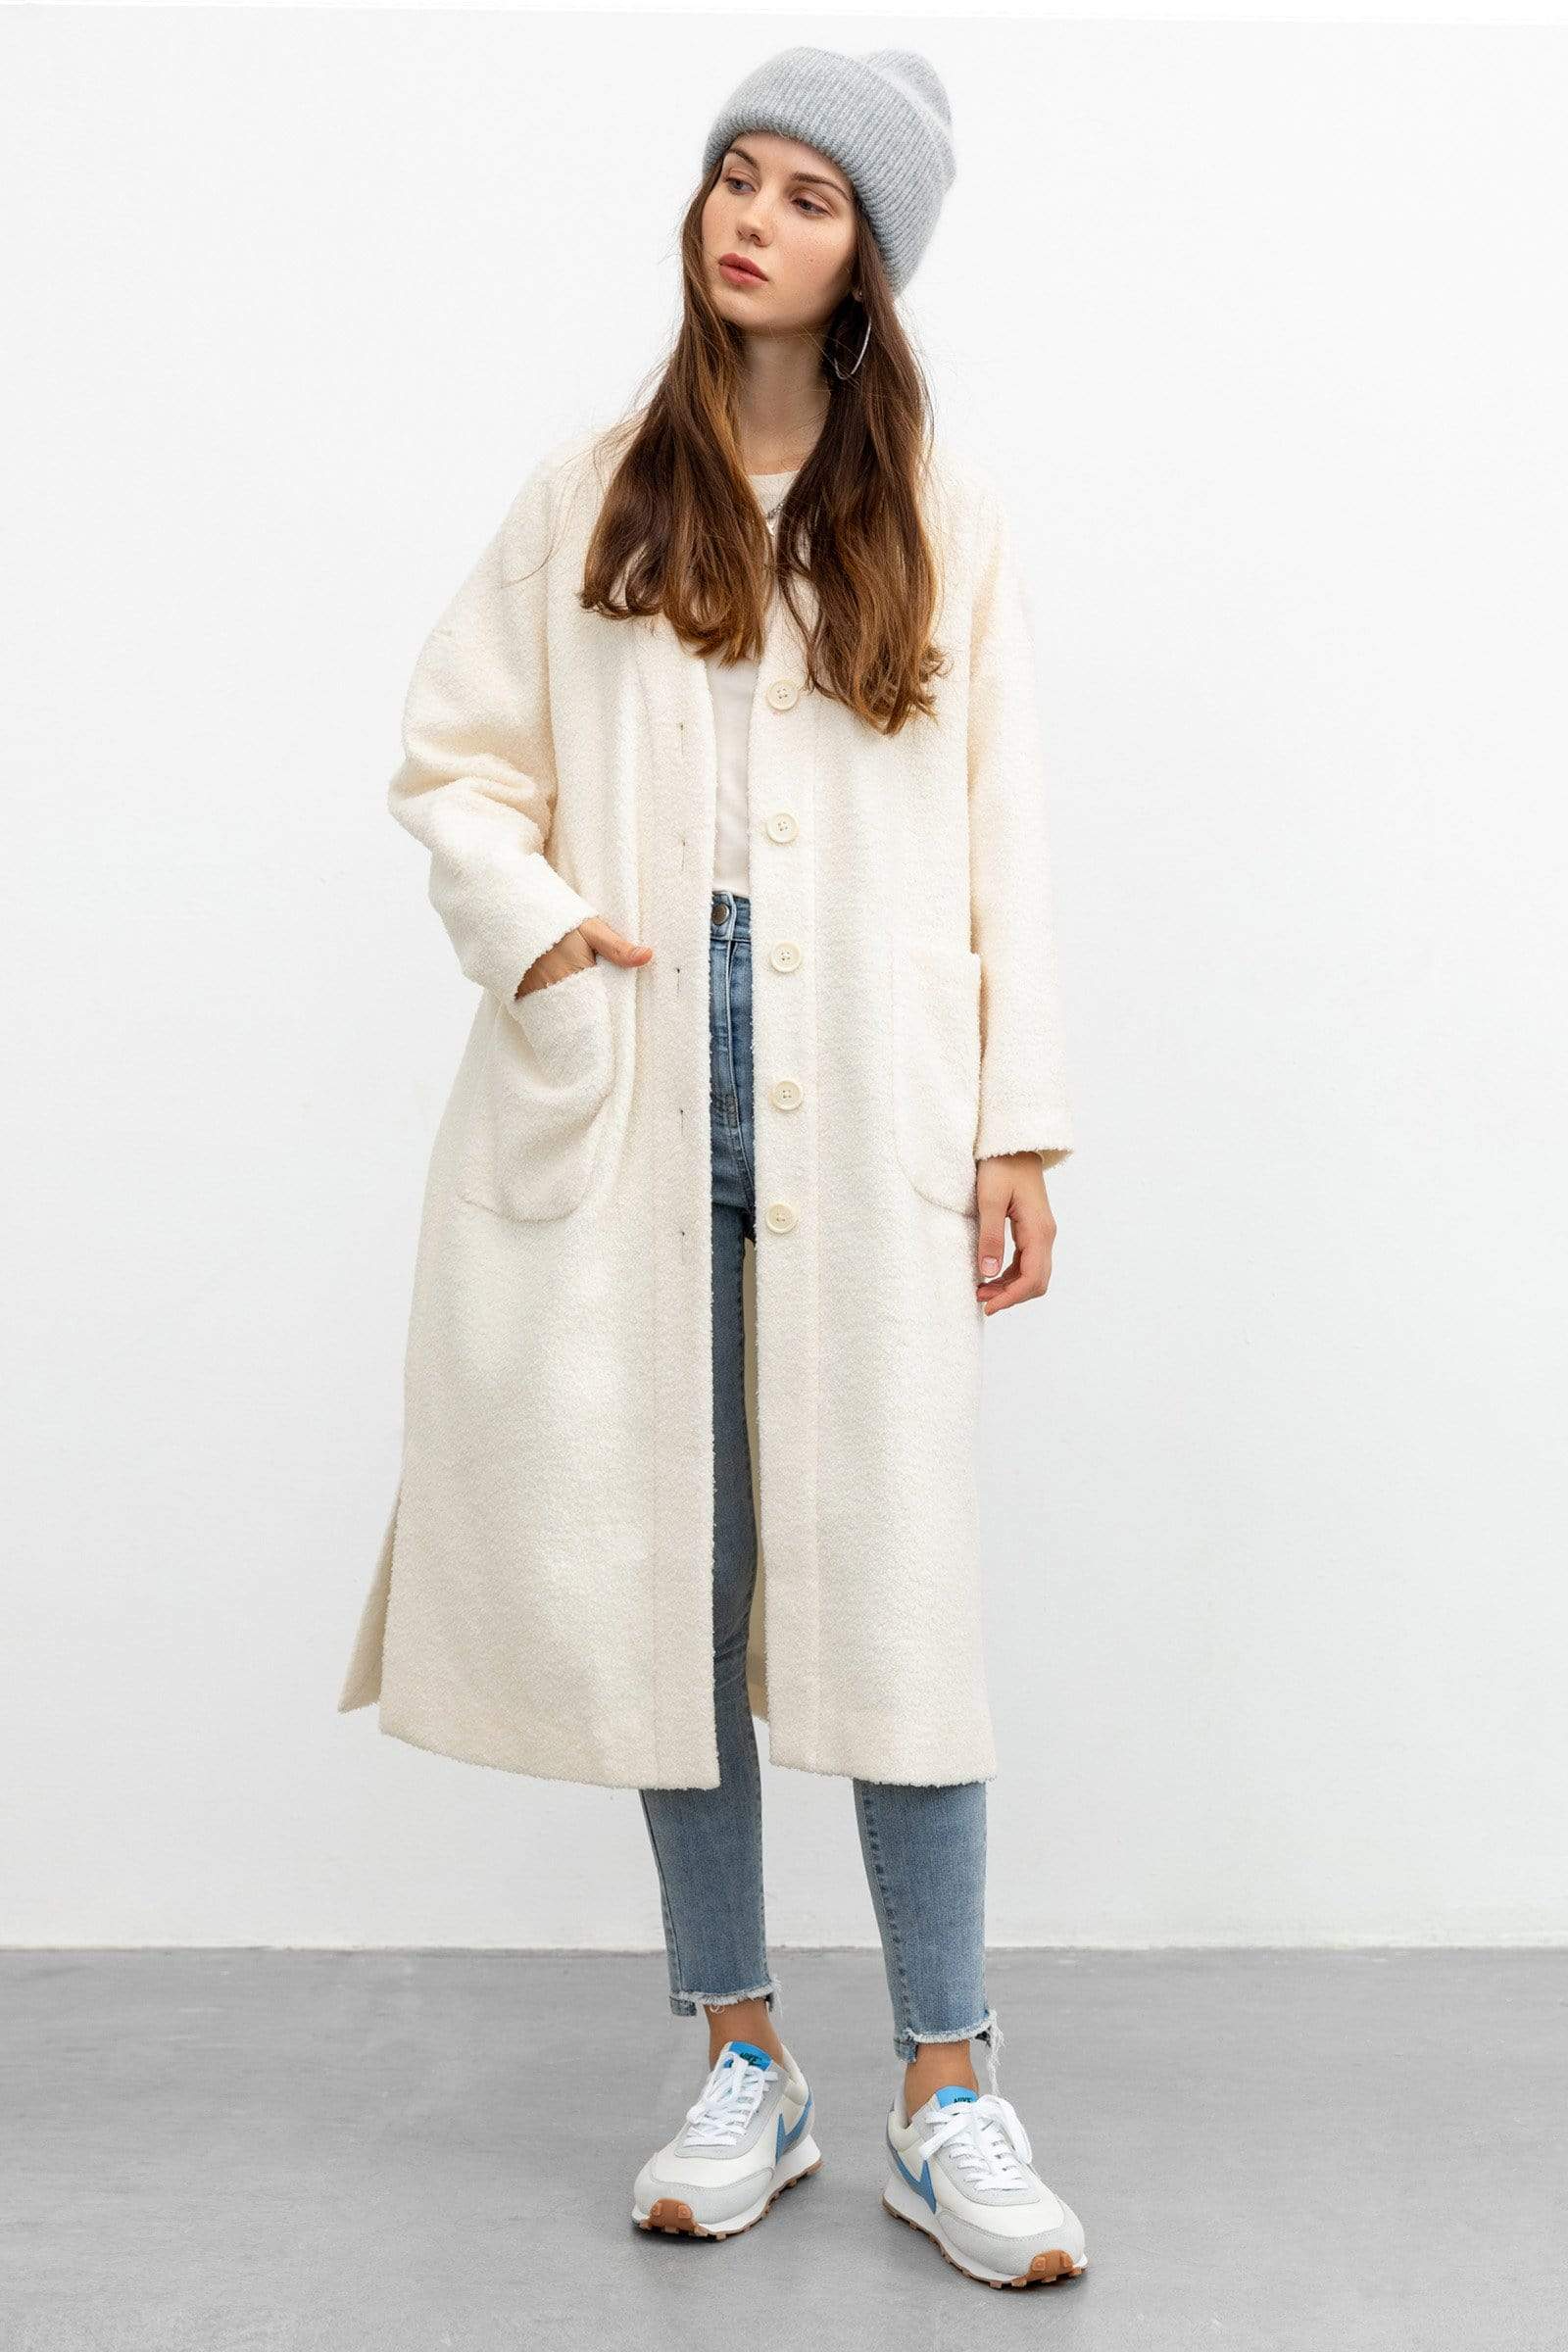 The Ida Grey Plaid Trench Coat by J.ING Women's Clothing & Apparel